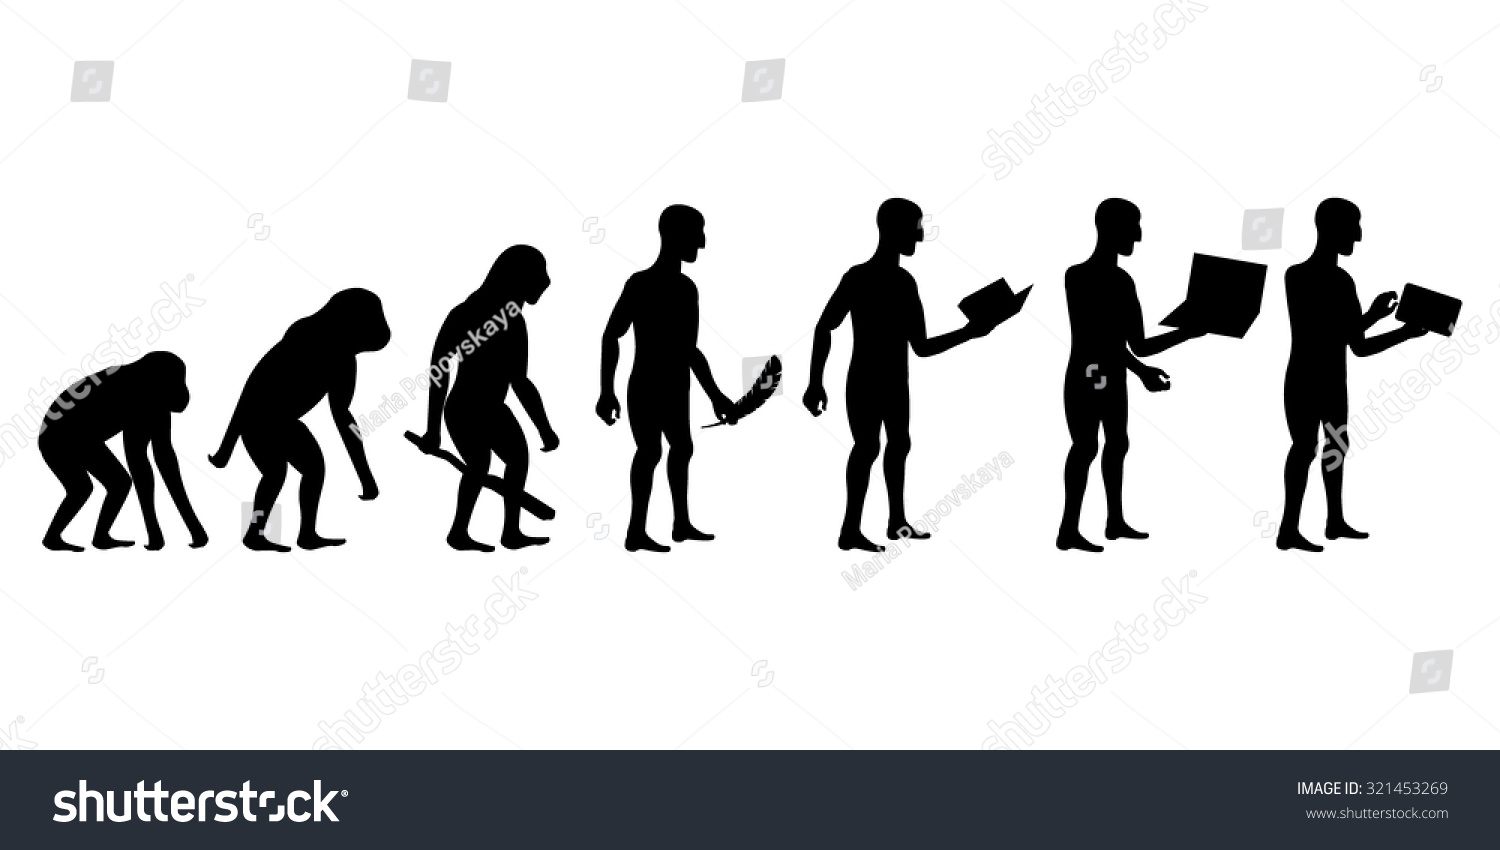 Evolution Man Technology Silhouettes Stock Vector 321453269 ...